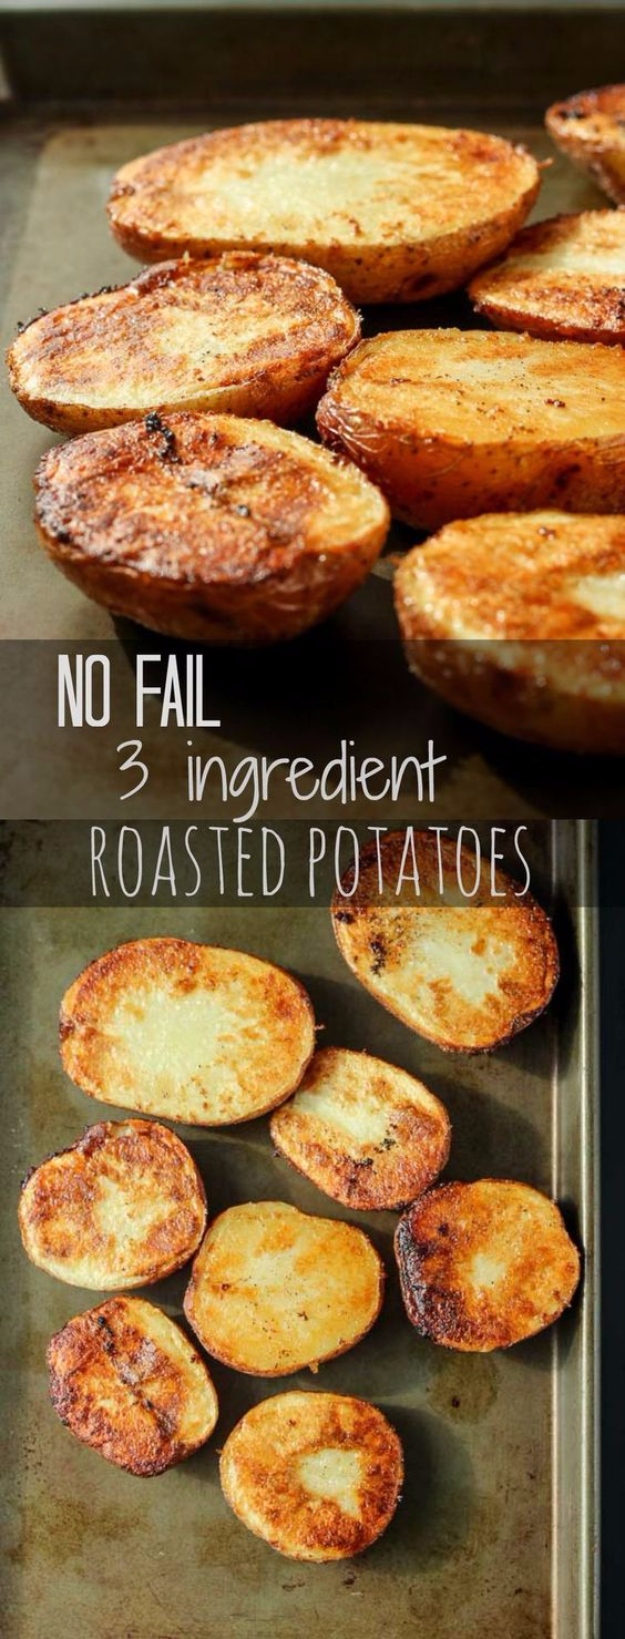 33 Easy Three Ingredient Recipes - No Fail 3 Ingredient Roasted Potatoes - Quick And Healthy 3 Ingredients Recipe Ideas for Breakfast, Lunch, Dinner, Appetizers, Snacks and Desserts - Cookies, Chicken, Crockpot Ideas, Baking and Microwave Recipes and Tutorials http://diyjoy.com/easy-three-ingredient-recipes